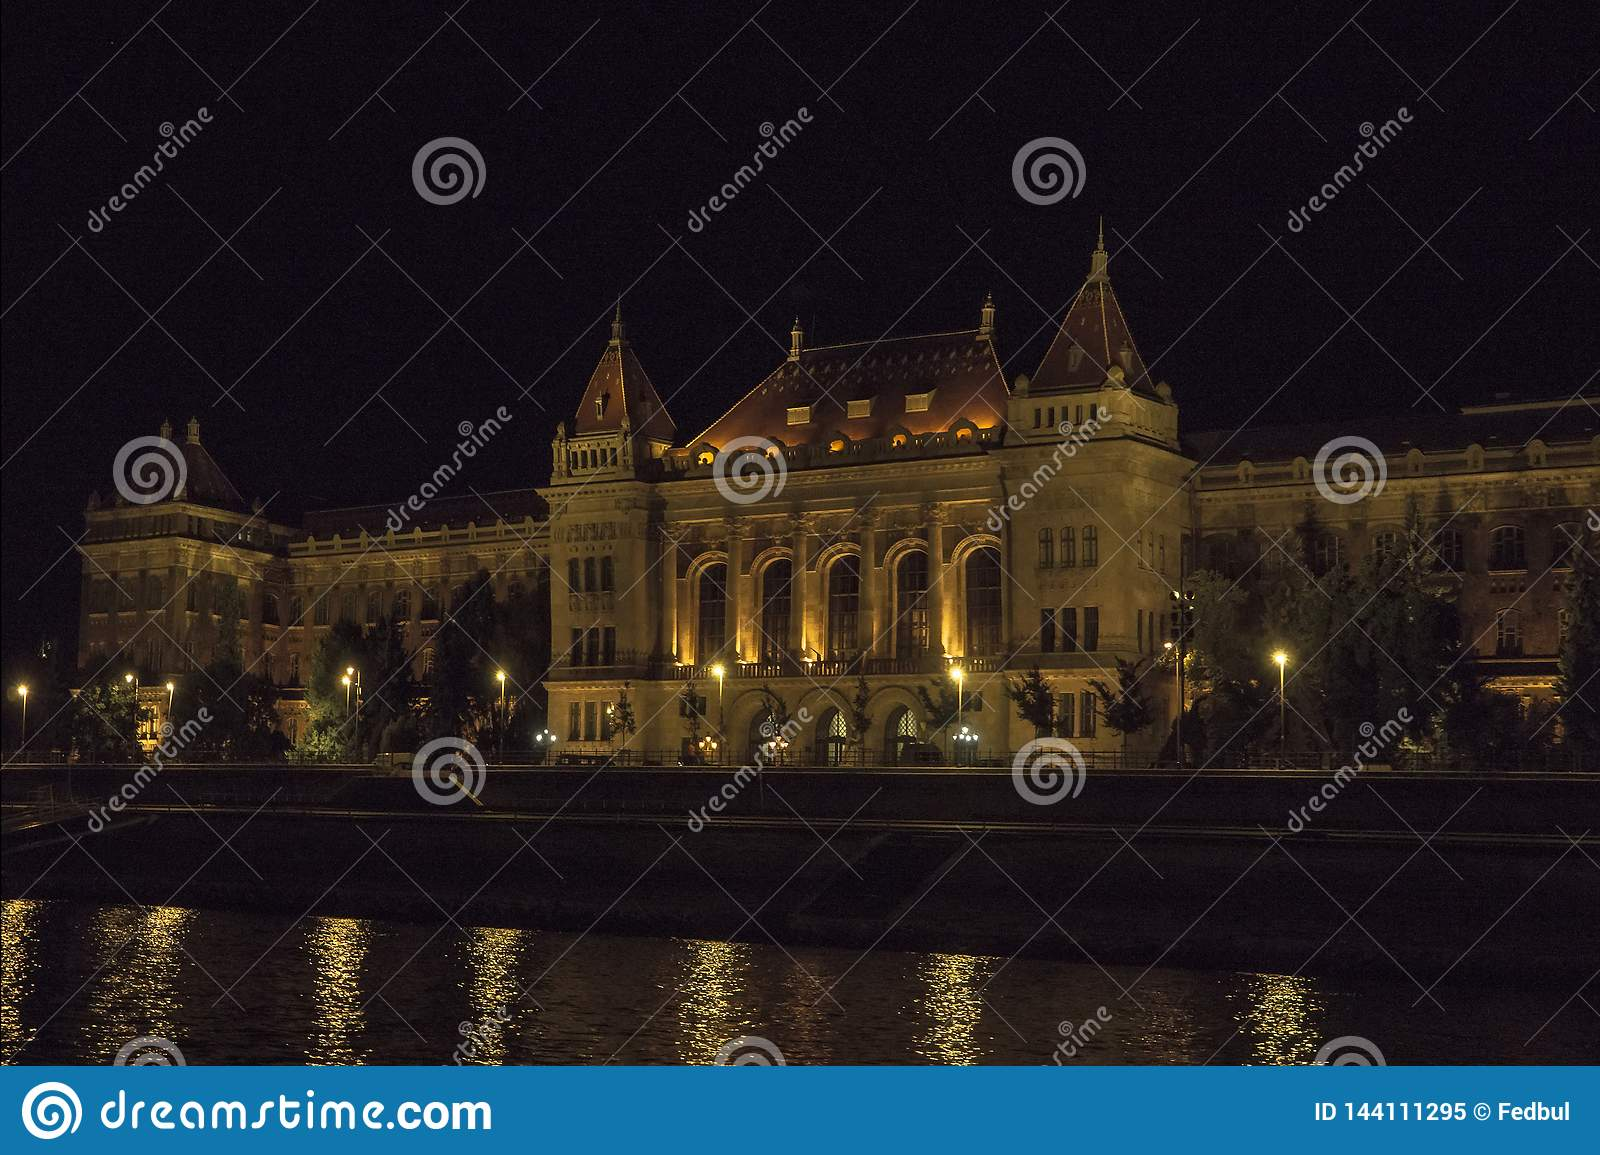 The Technical University Muszaki Egyetem in night Budapest Hungary